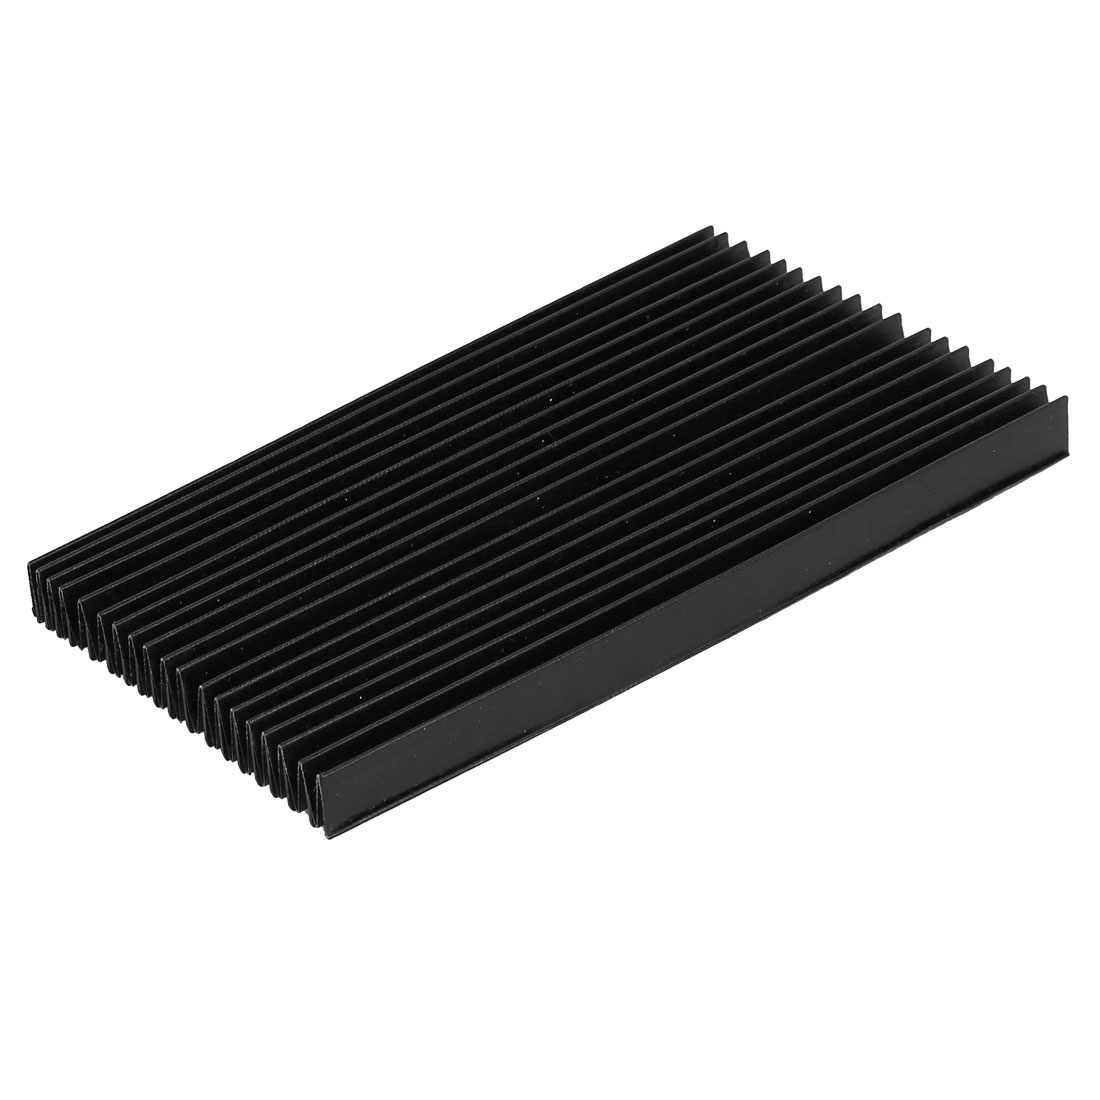 CNC Machine Fitting Foldable Accordion Dust Protective Cover Black 195mm x 15mm